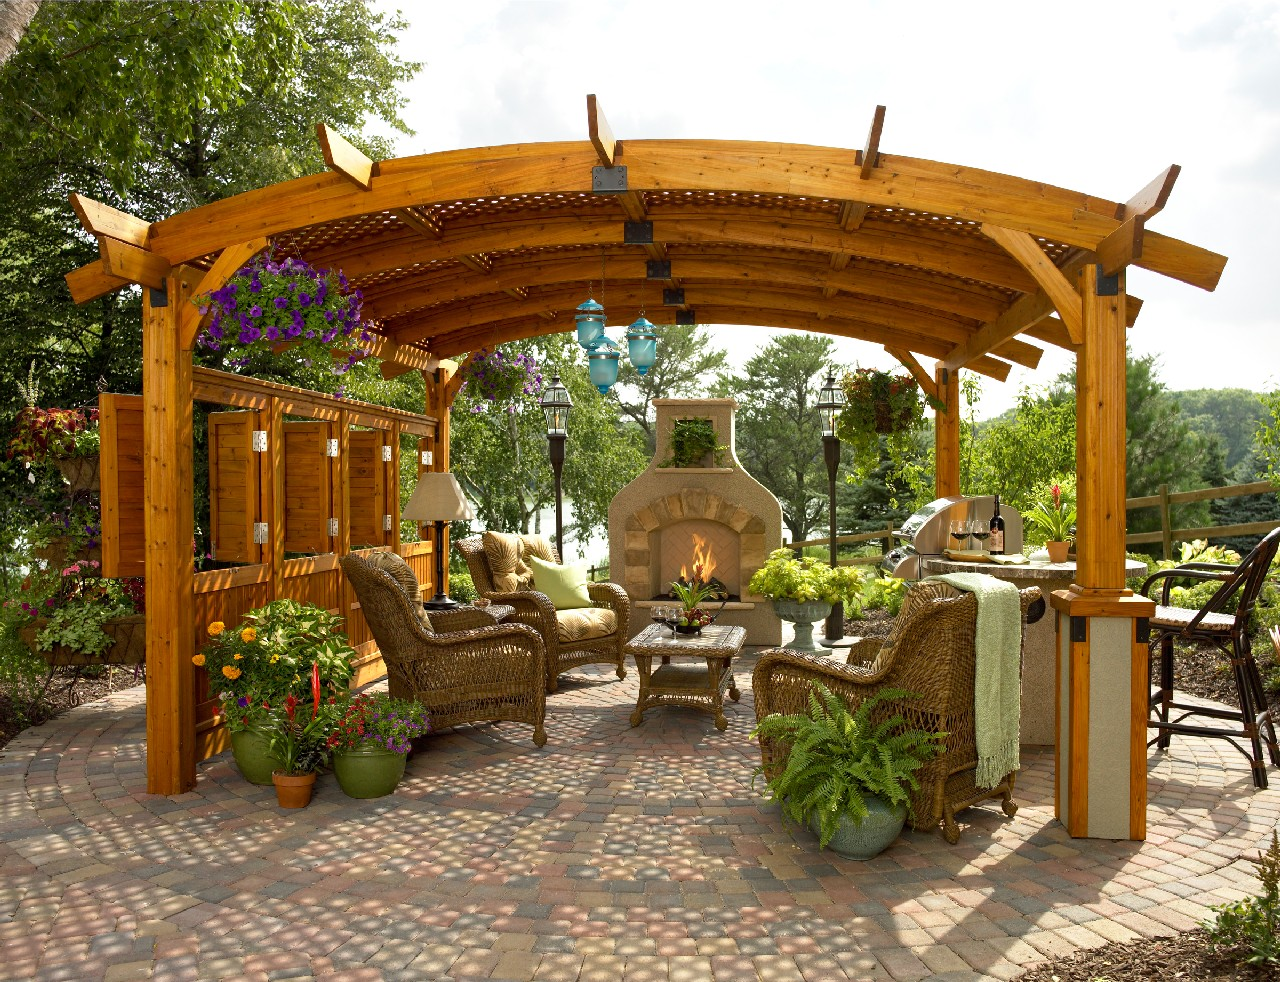 Stylish Pergola Ideas for Your Home - Pool Quest